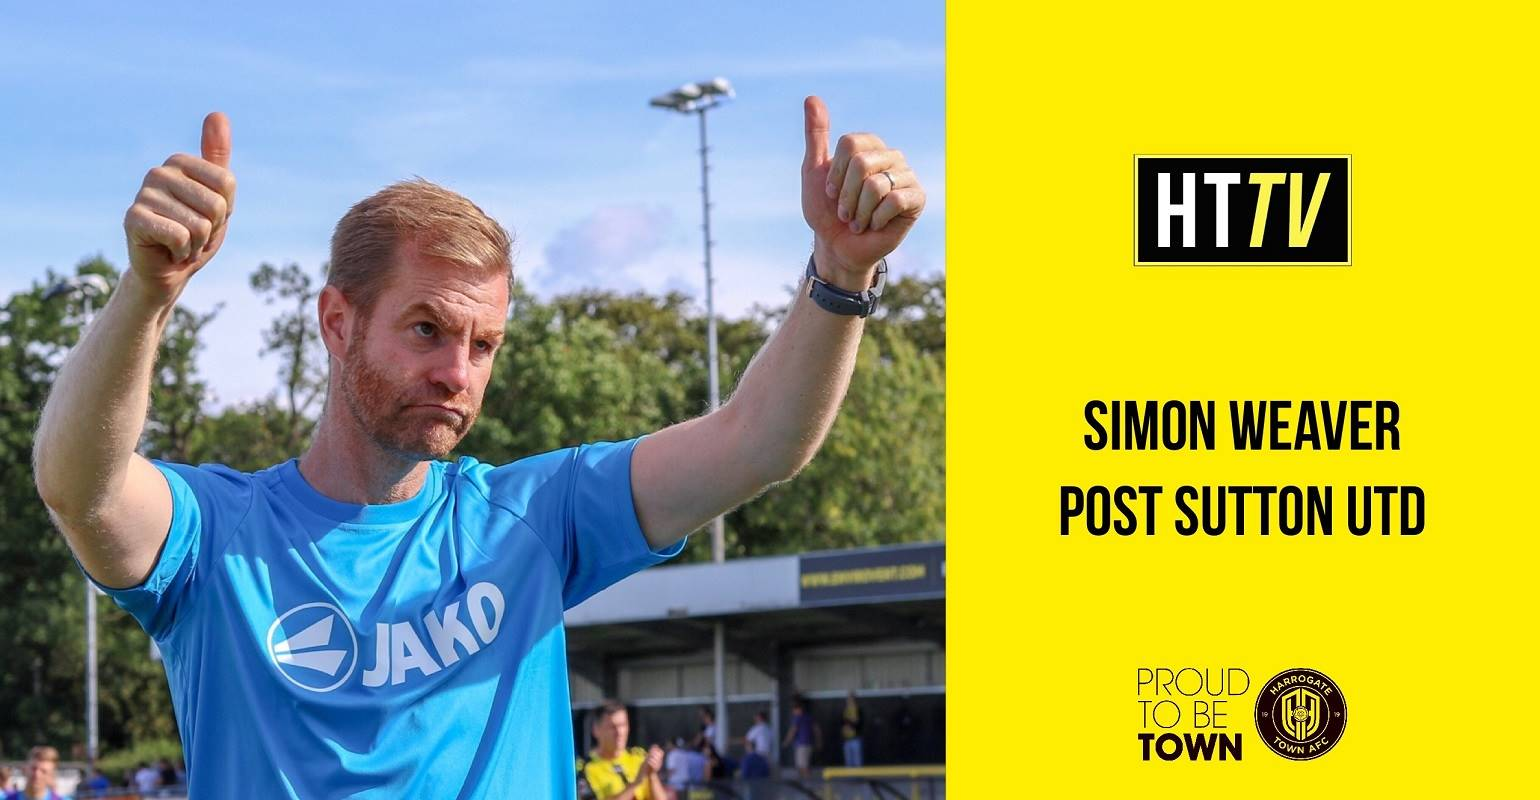 HTTV | Simon Weaver Post Sutton